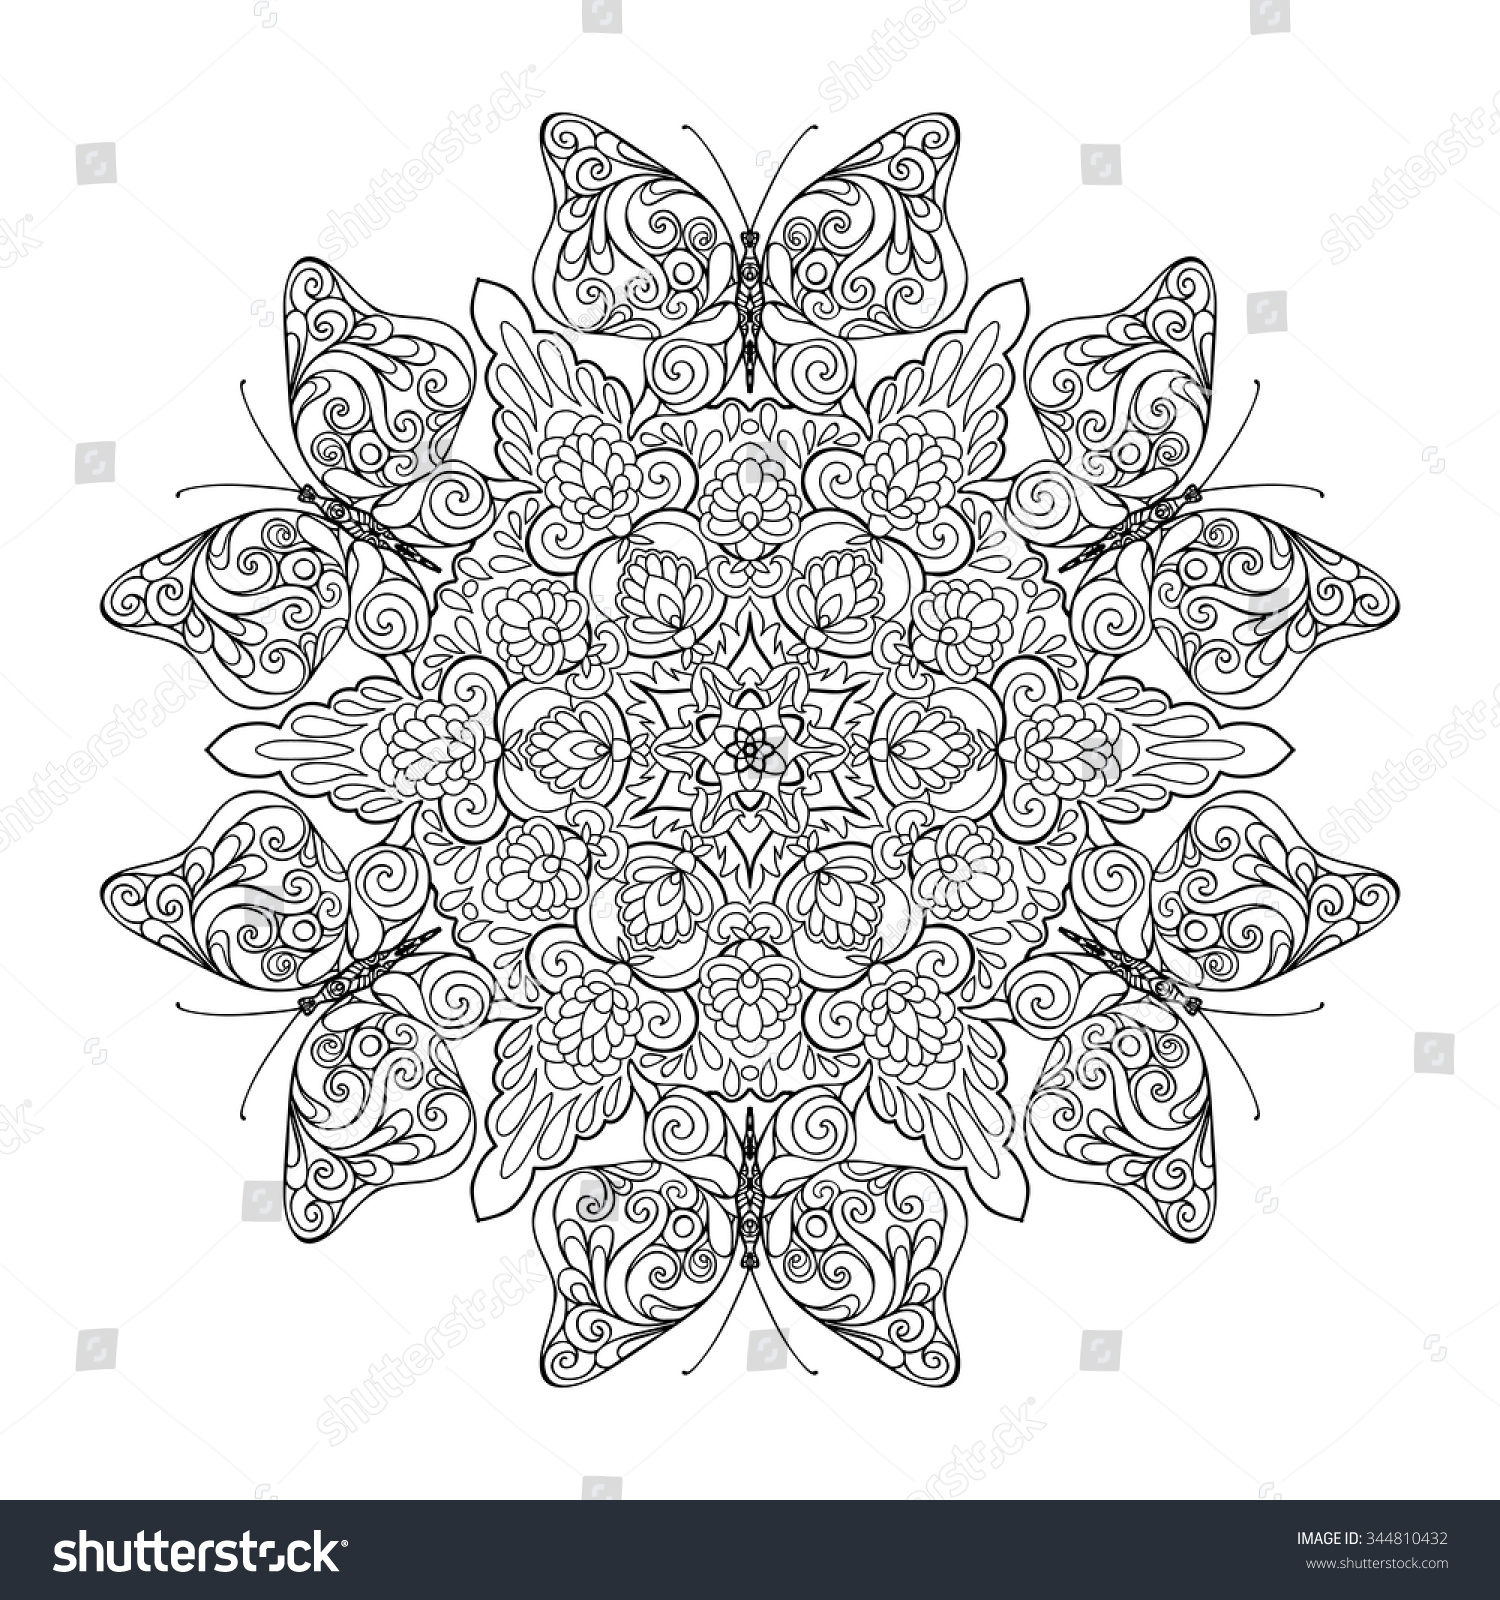 coloring book older children coloring stock vector 344810432